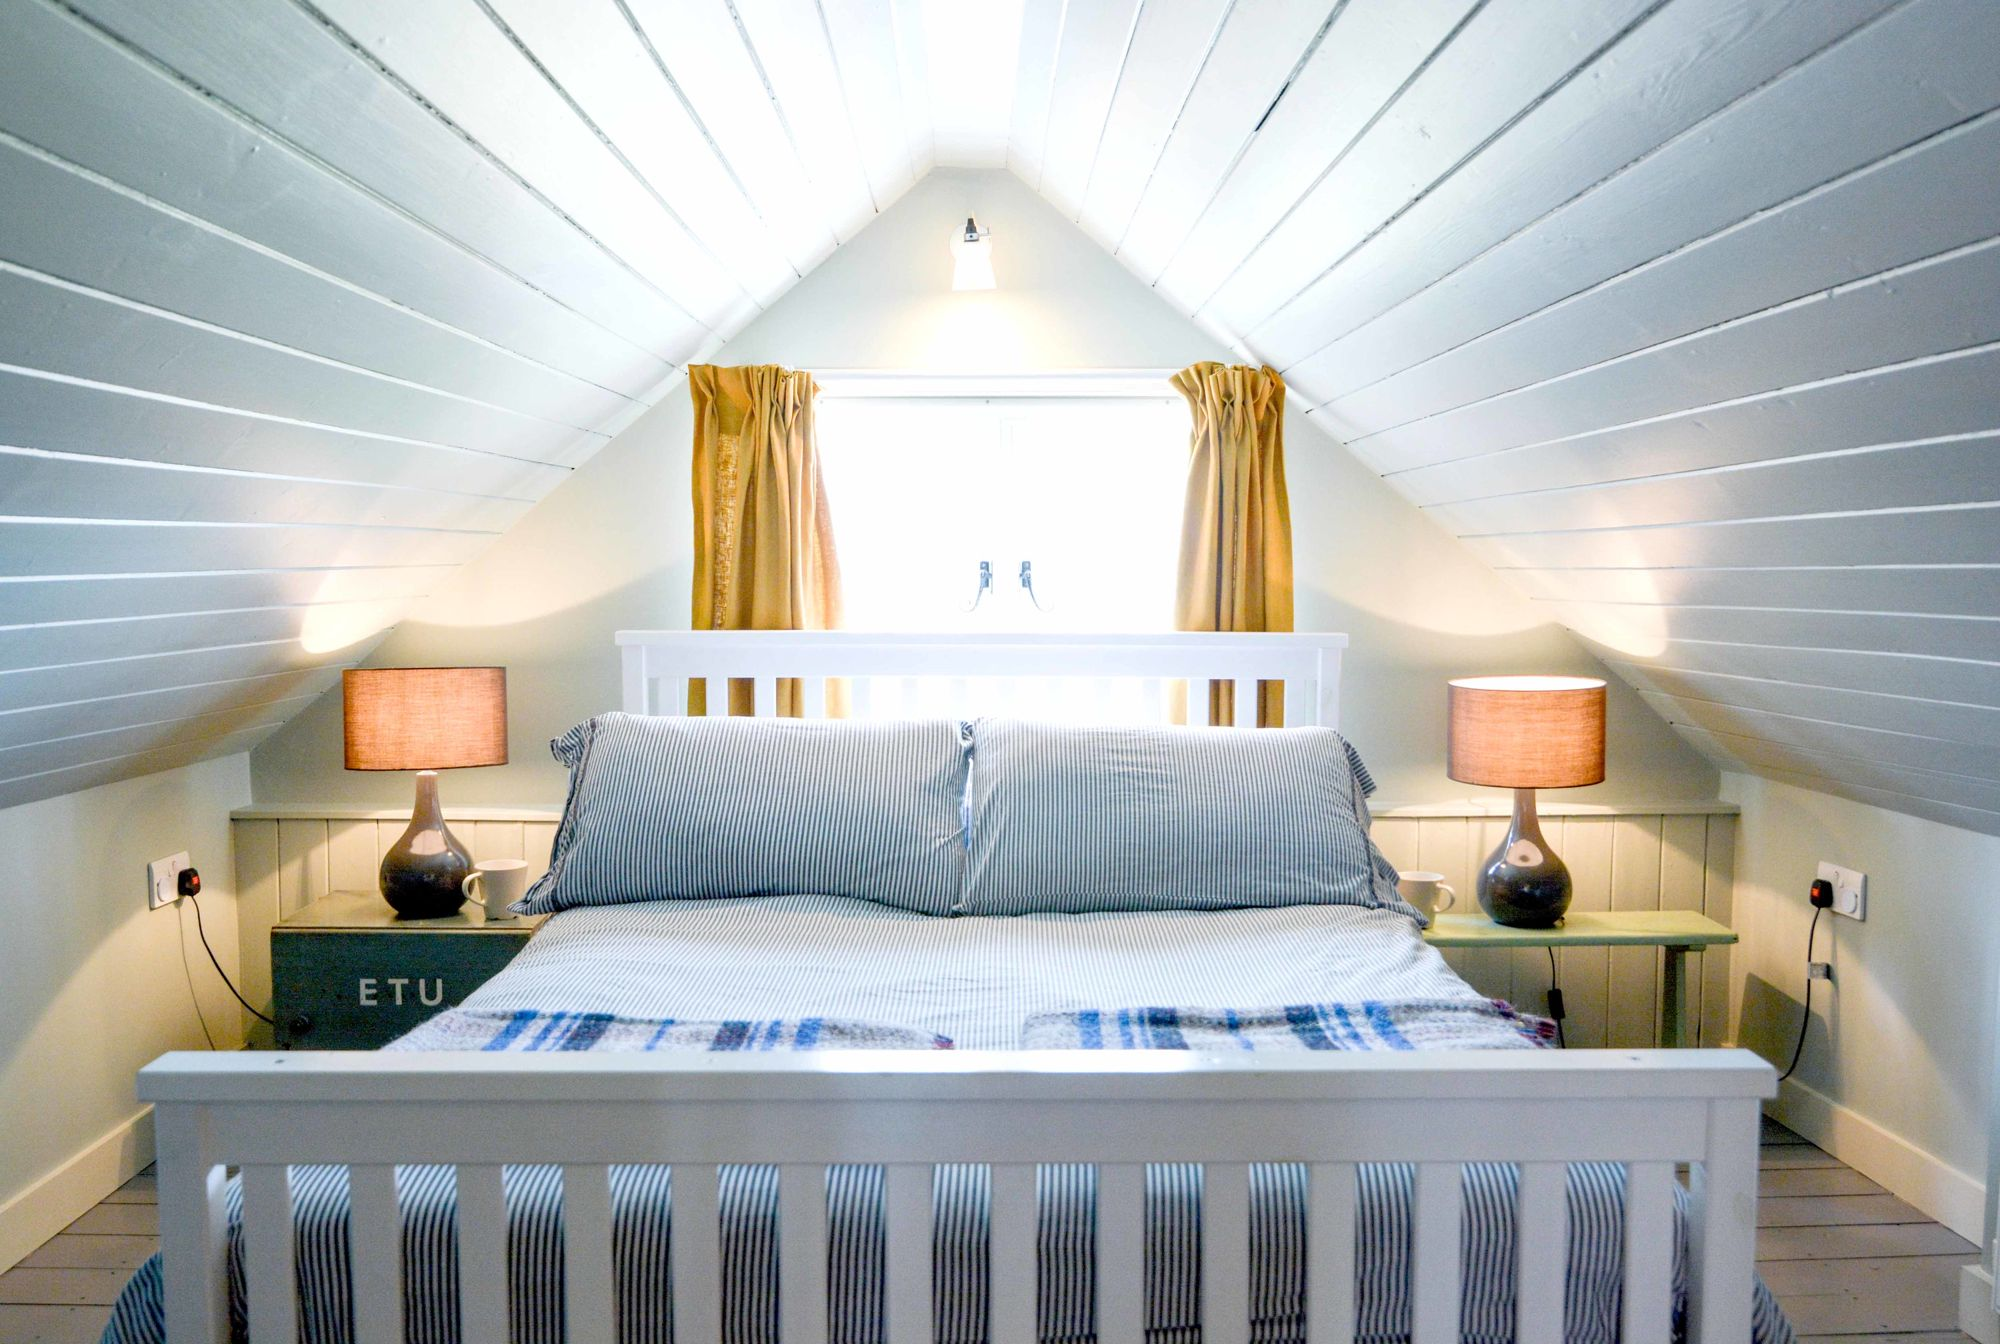 Self-Catering in South East England holidays at Cool Places